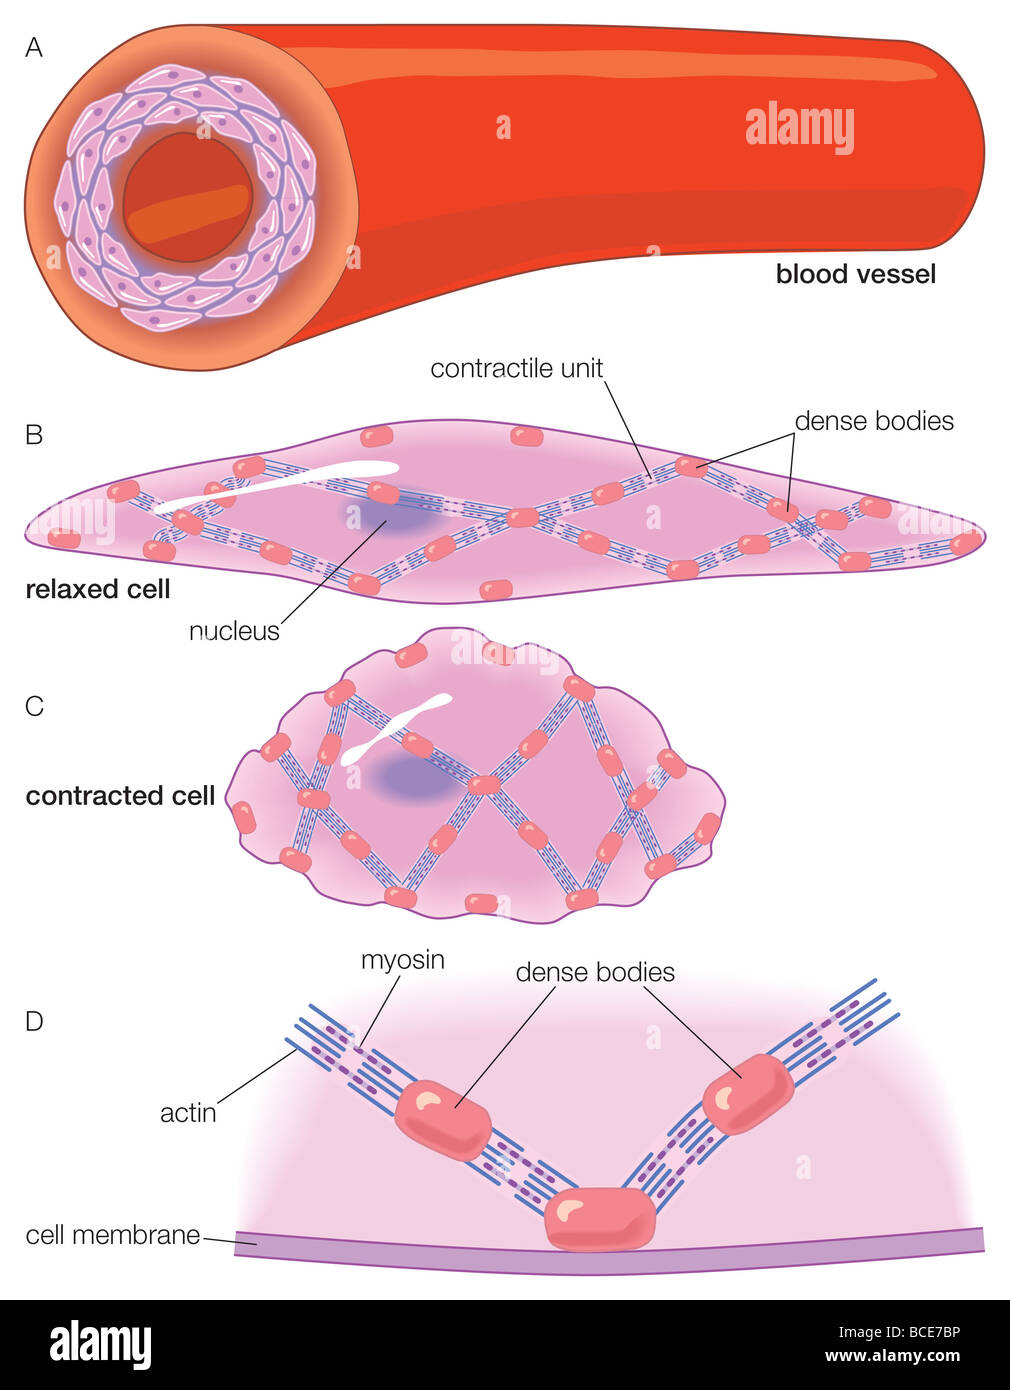 the artery wall and the ultrastructure of the smooth muscle cells